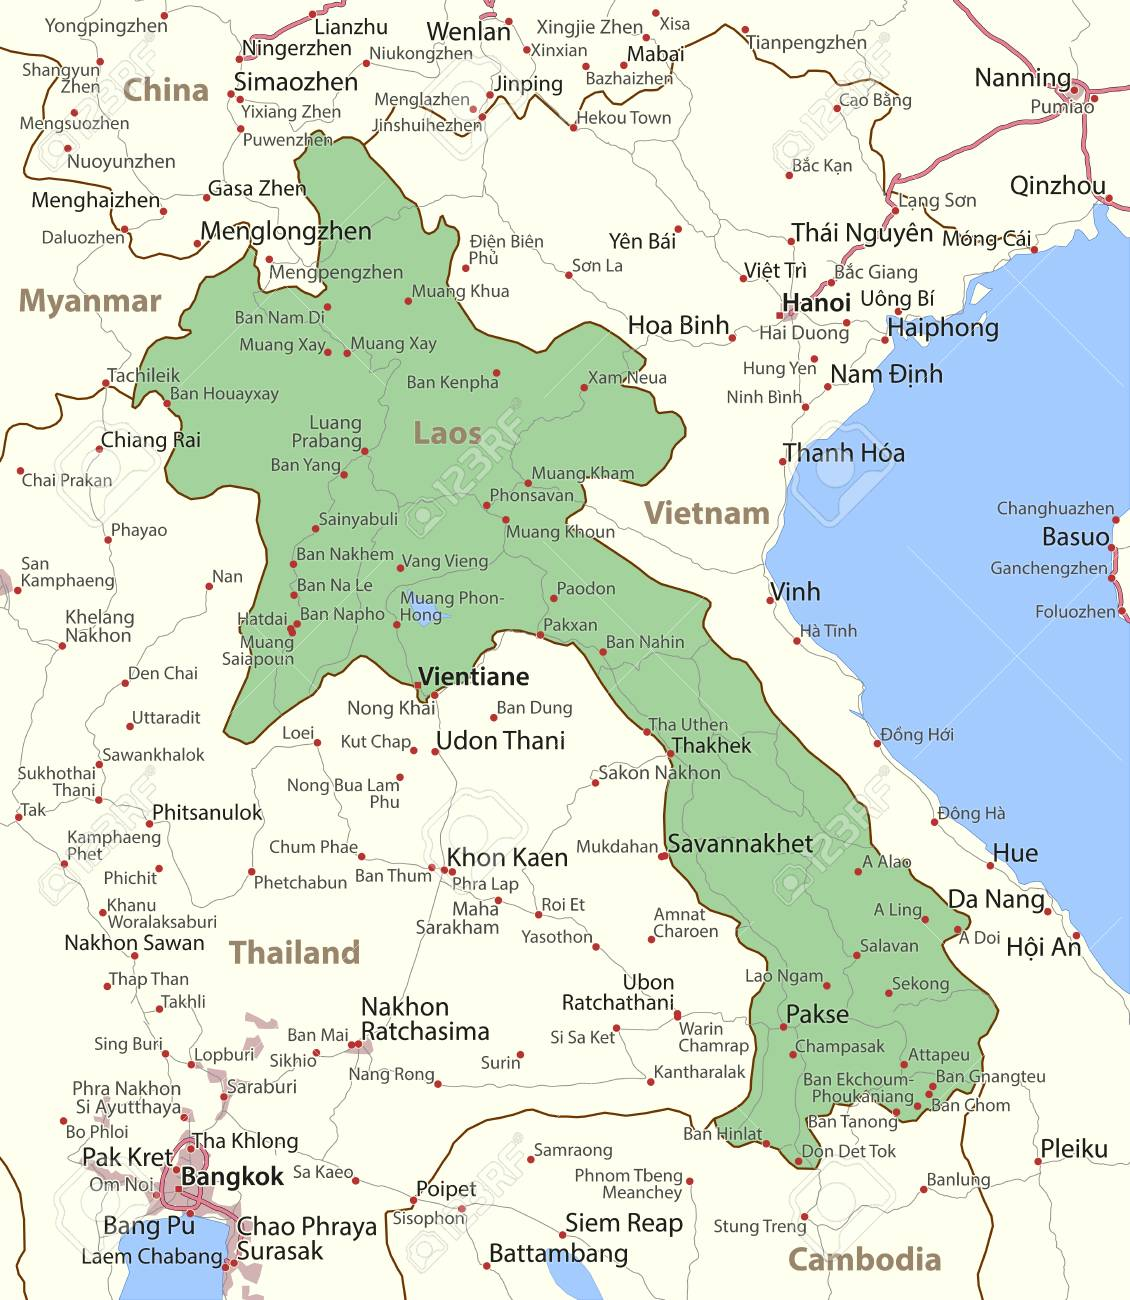 Map Of Laos. Shows Country Borders, Urban Areas, Place Names ...